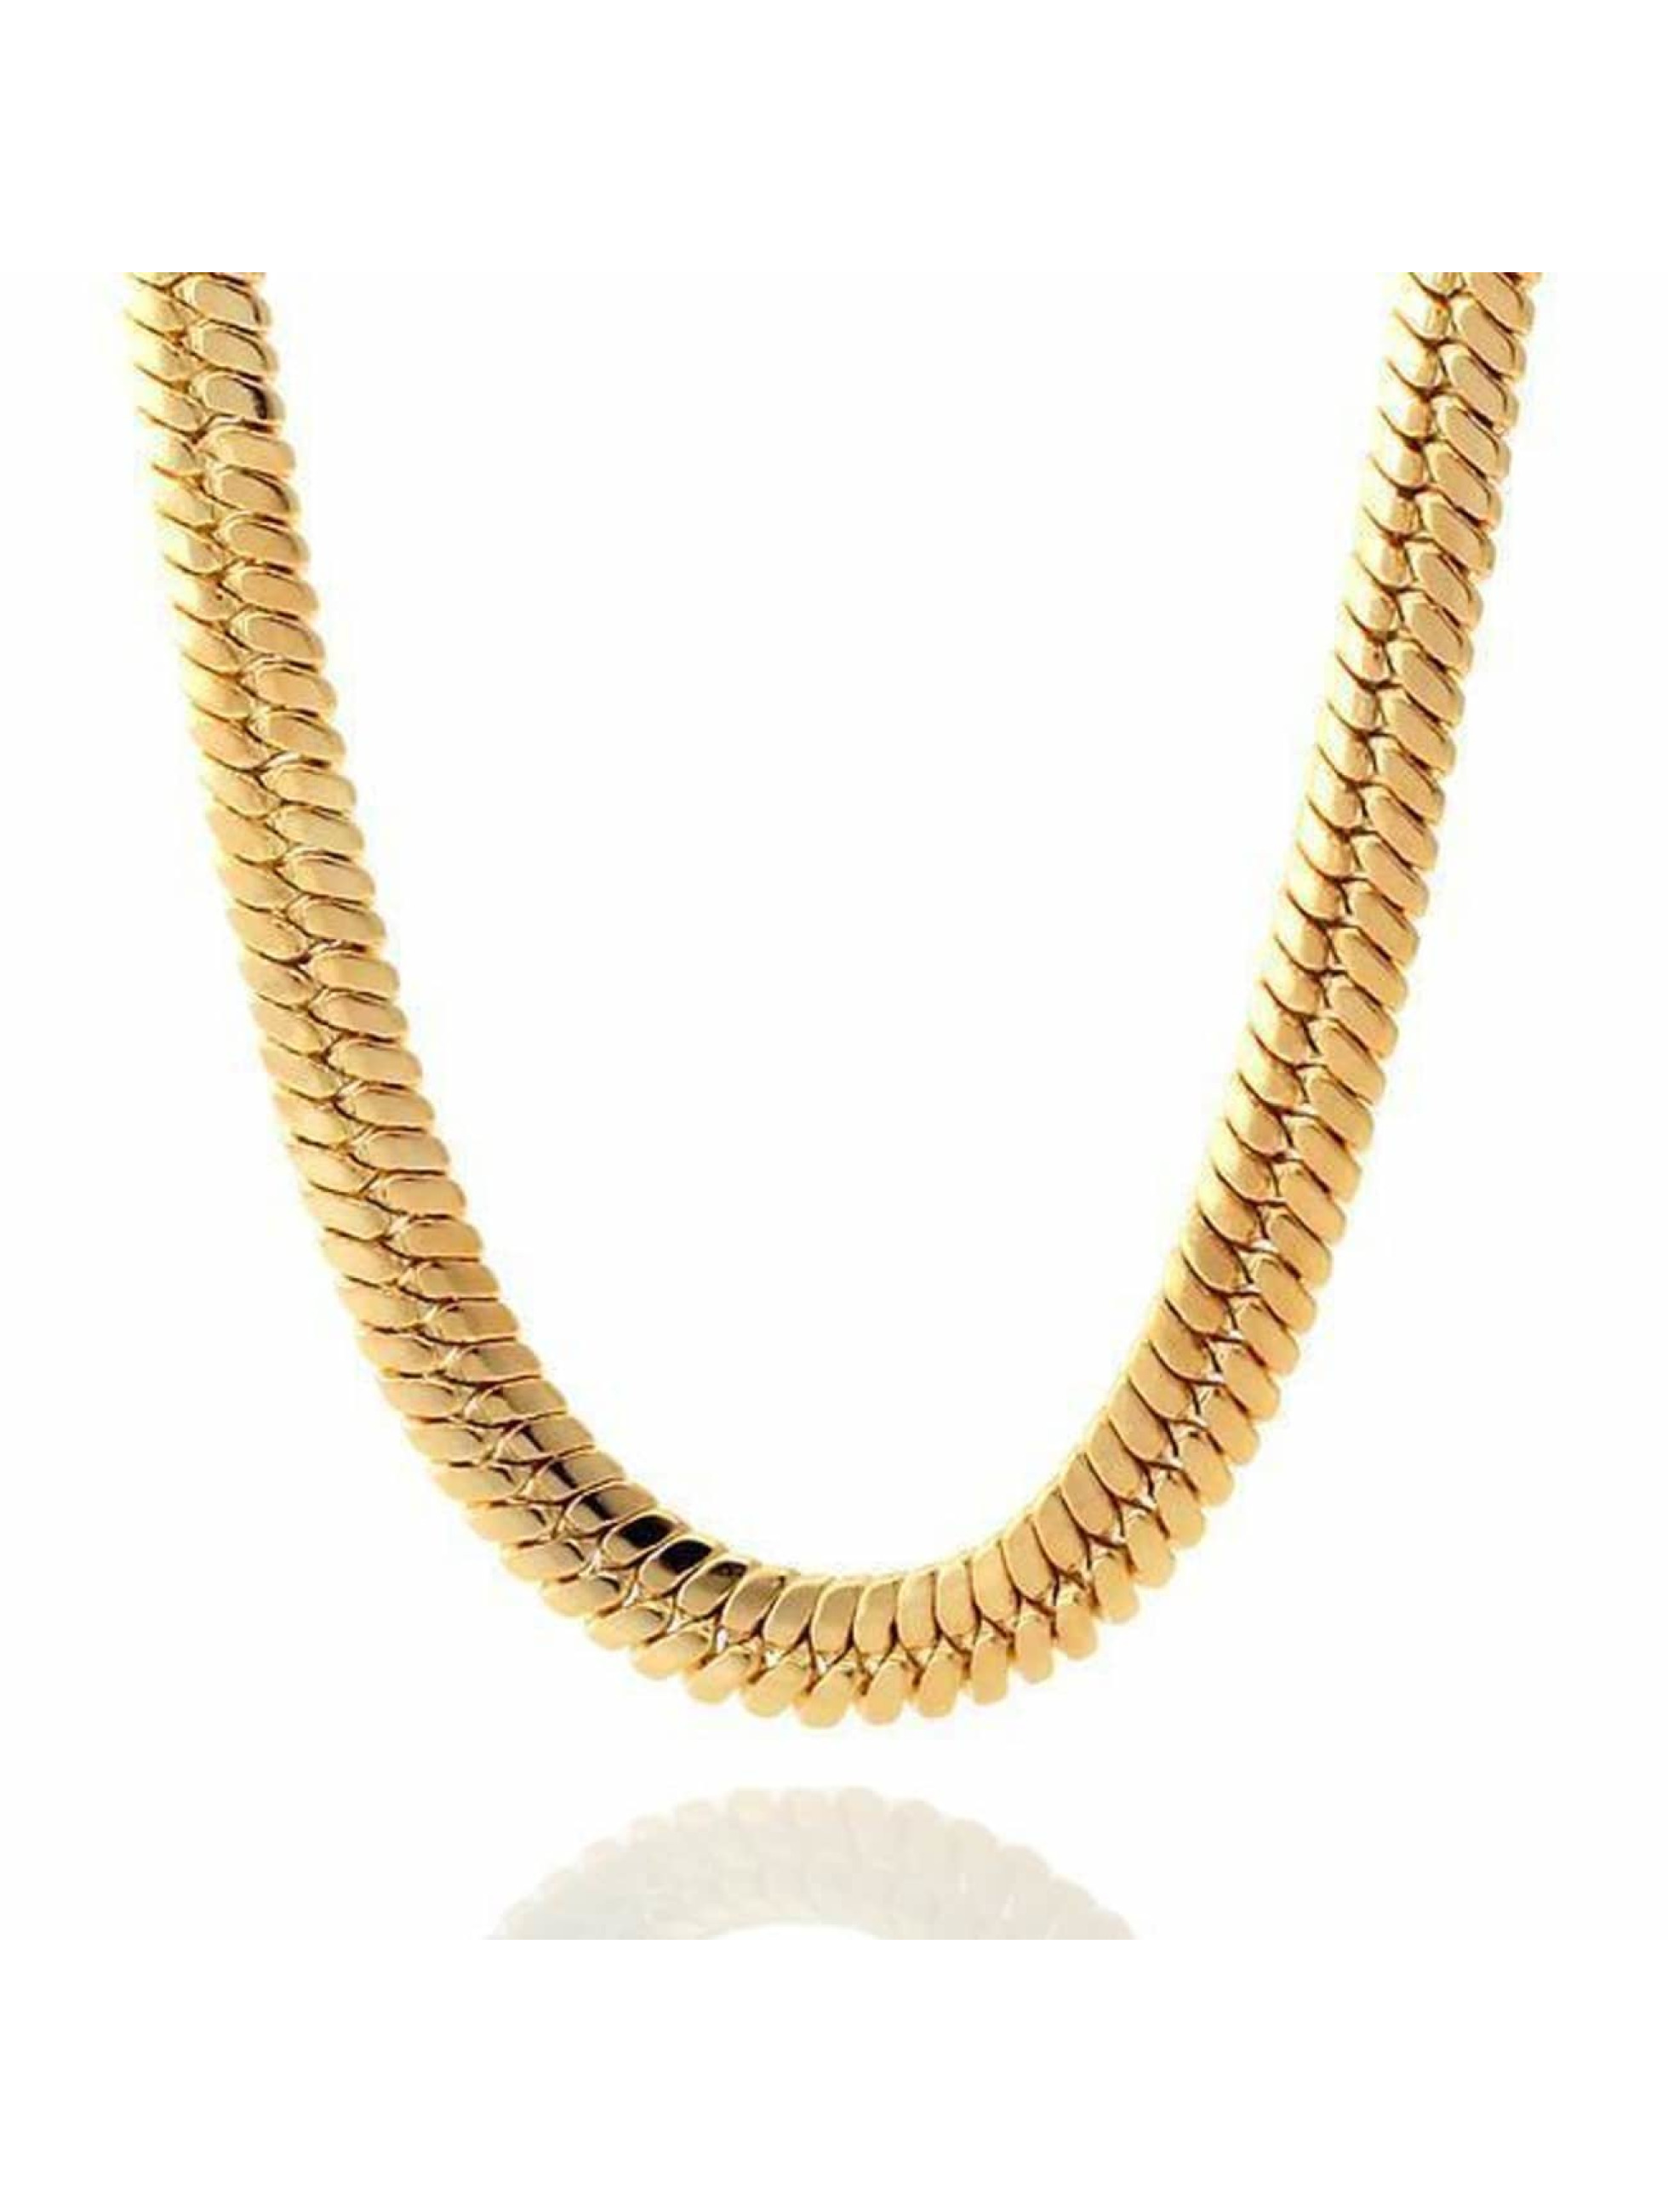 KING ICE Kette Gold_Plated 10mm Thick Herringbone goldfarben